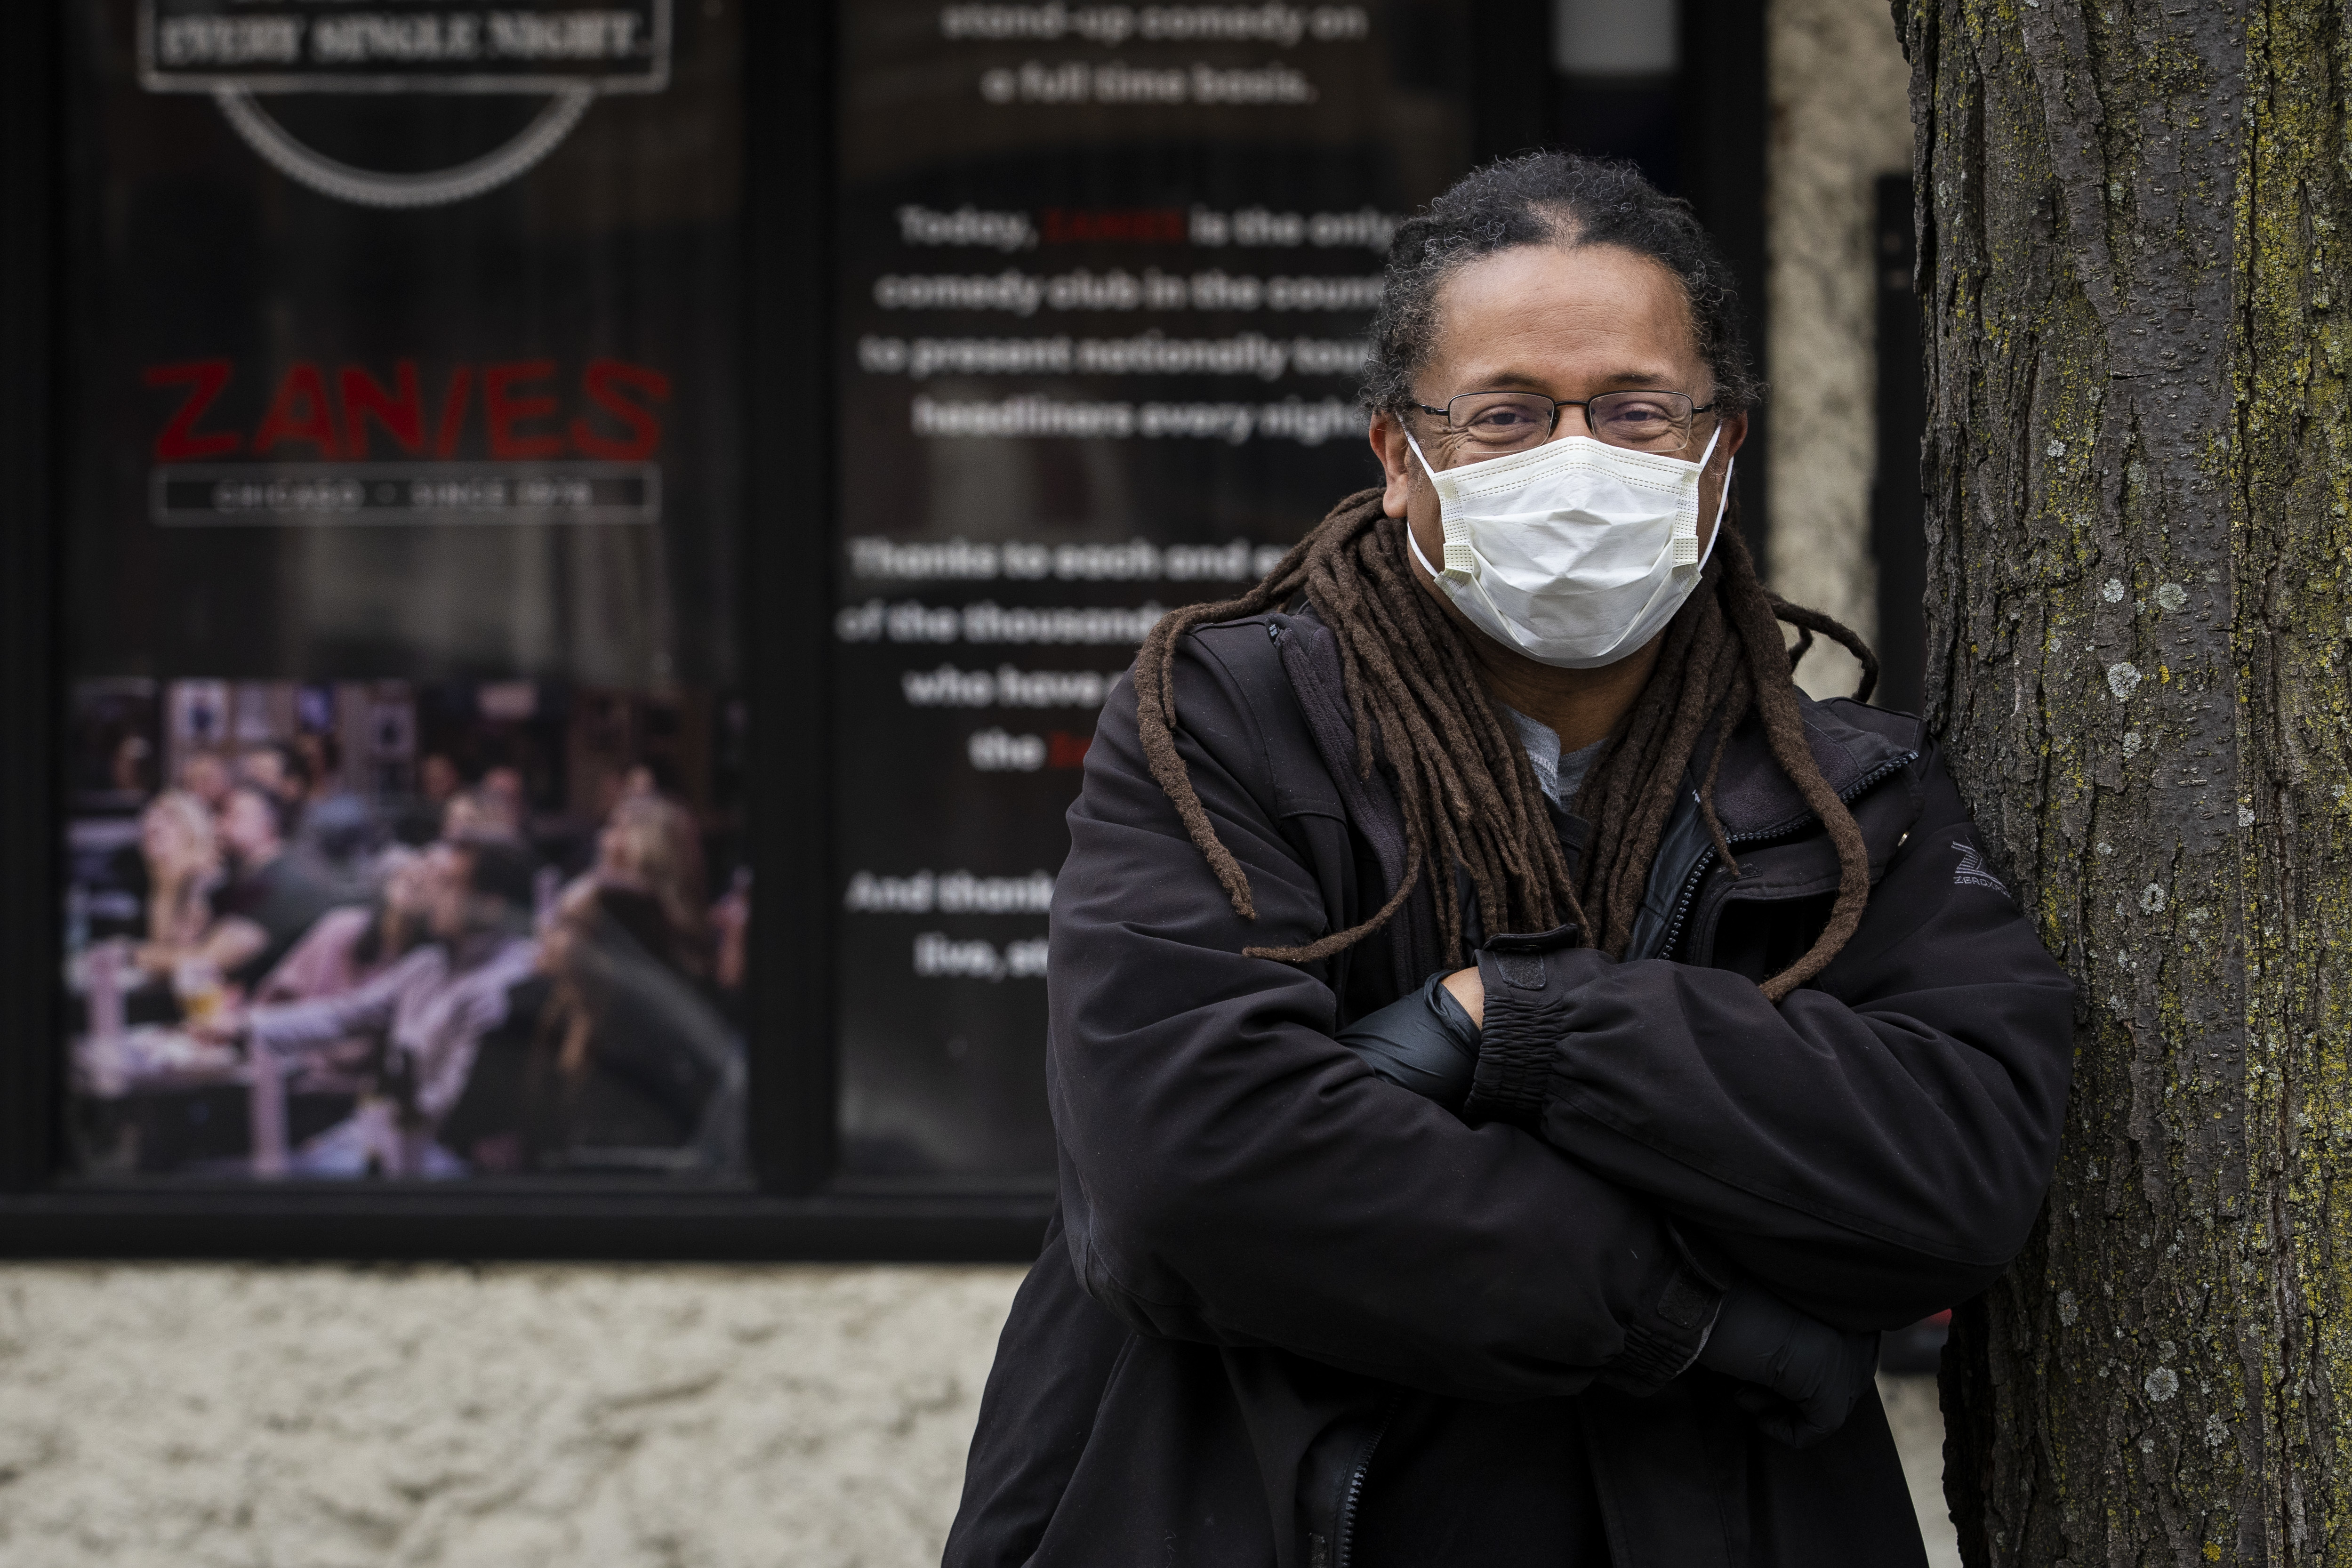 Chicago comedian Dwayne Kennedy is smiling — no, really — behind that mask outside Zanies comedy club in Old Town.